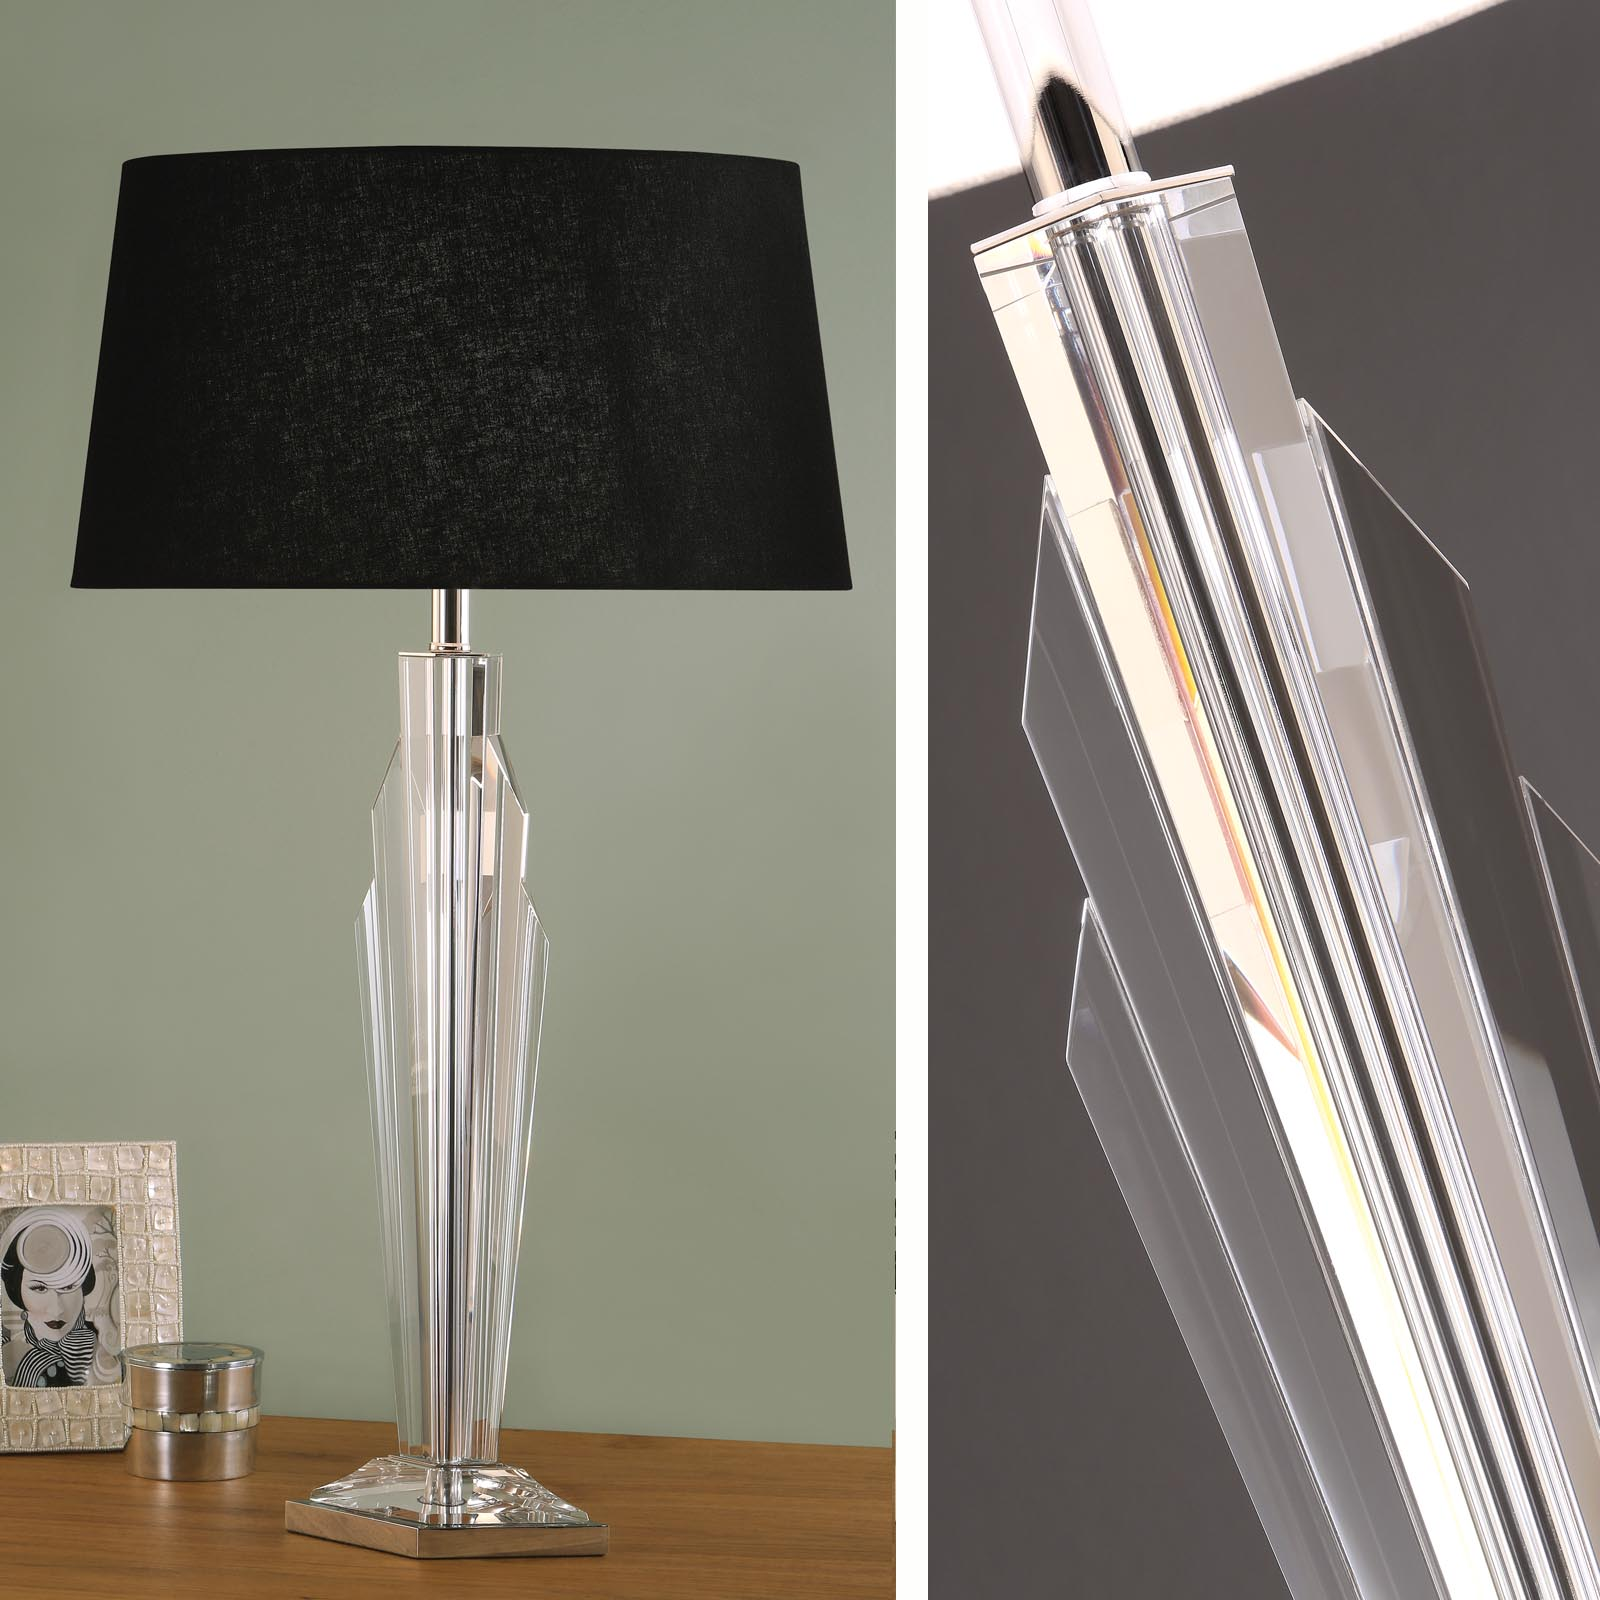 Art deco gatsby crystal table lamp black shade art deco gatsby crystal table lamp black shade 0 mozeypictures Image collections